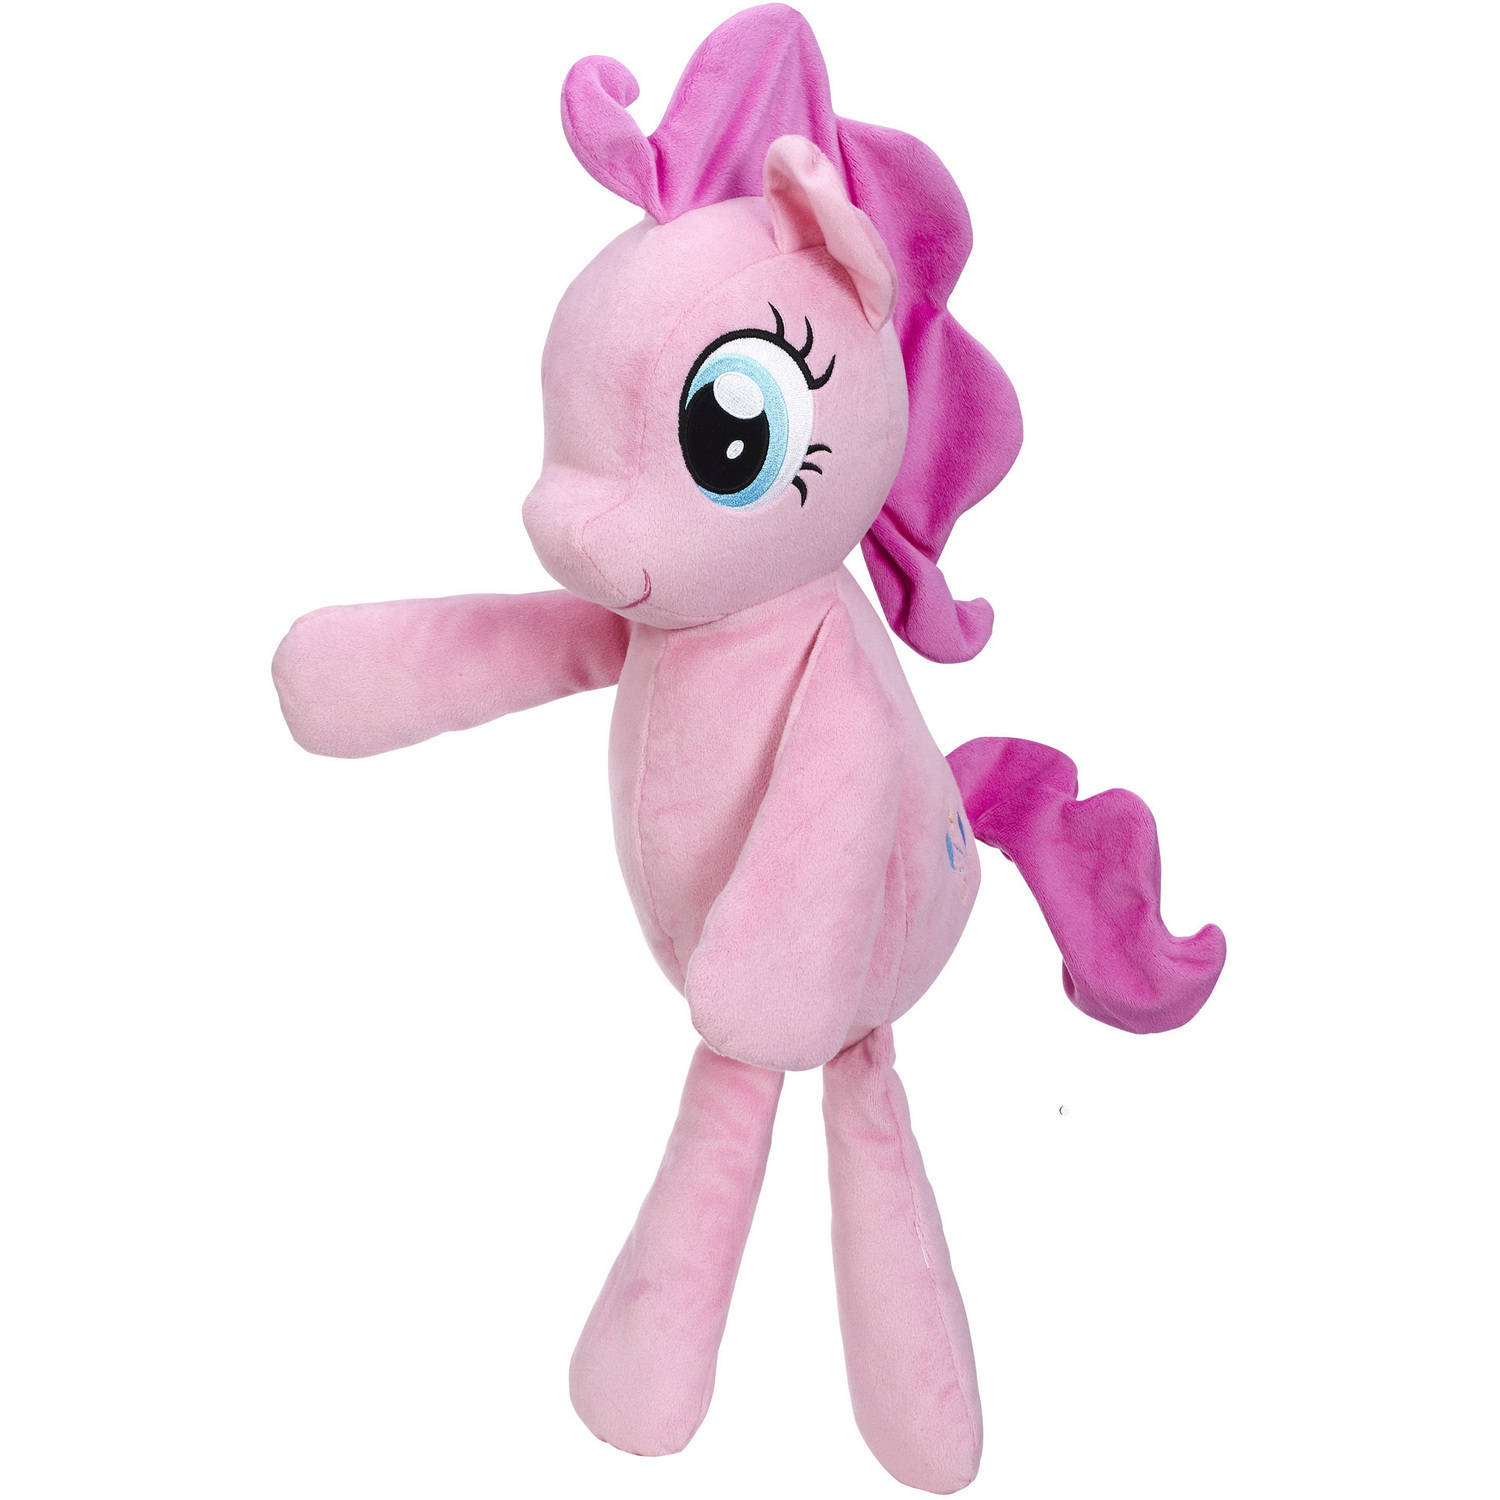 My Little Pony Friendship is Magic Pinkie Pie Huggable Plush by Hasbro